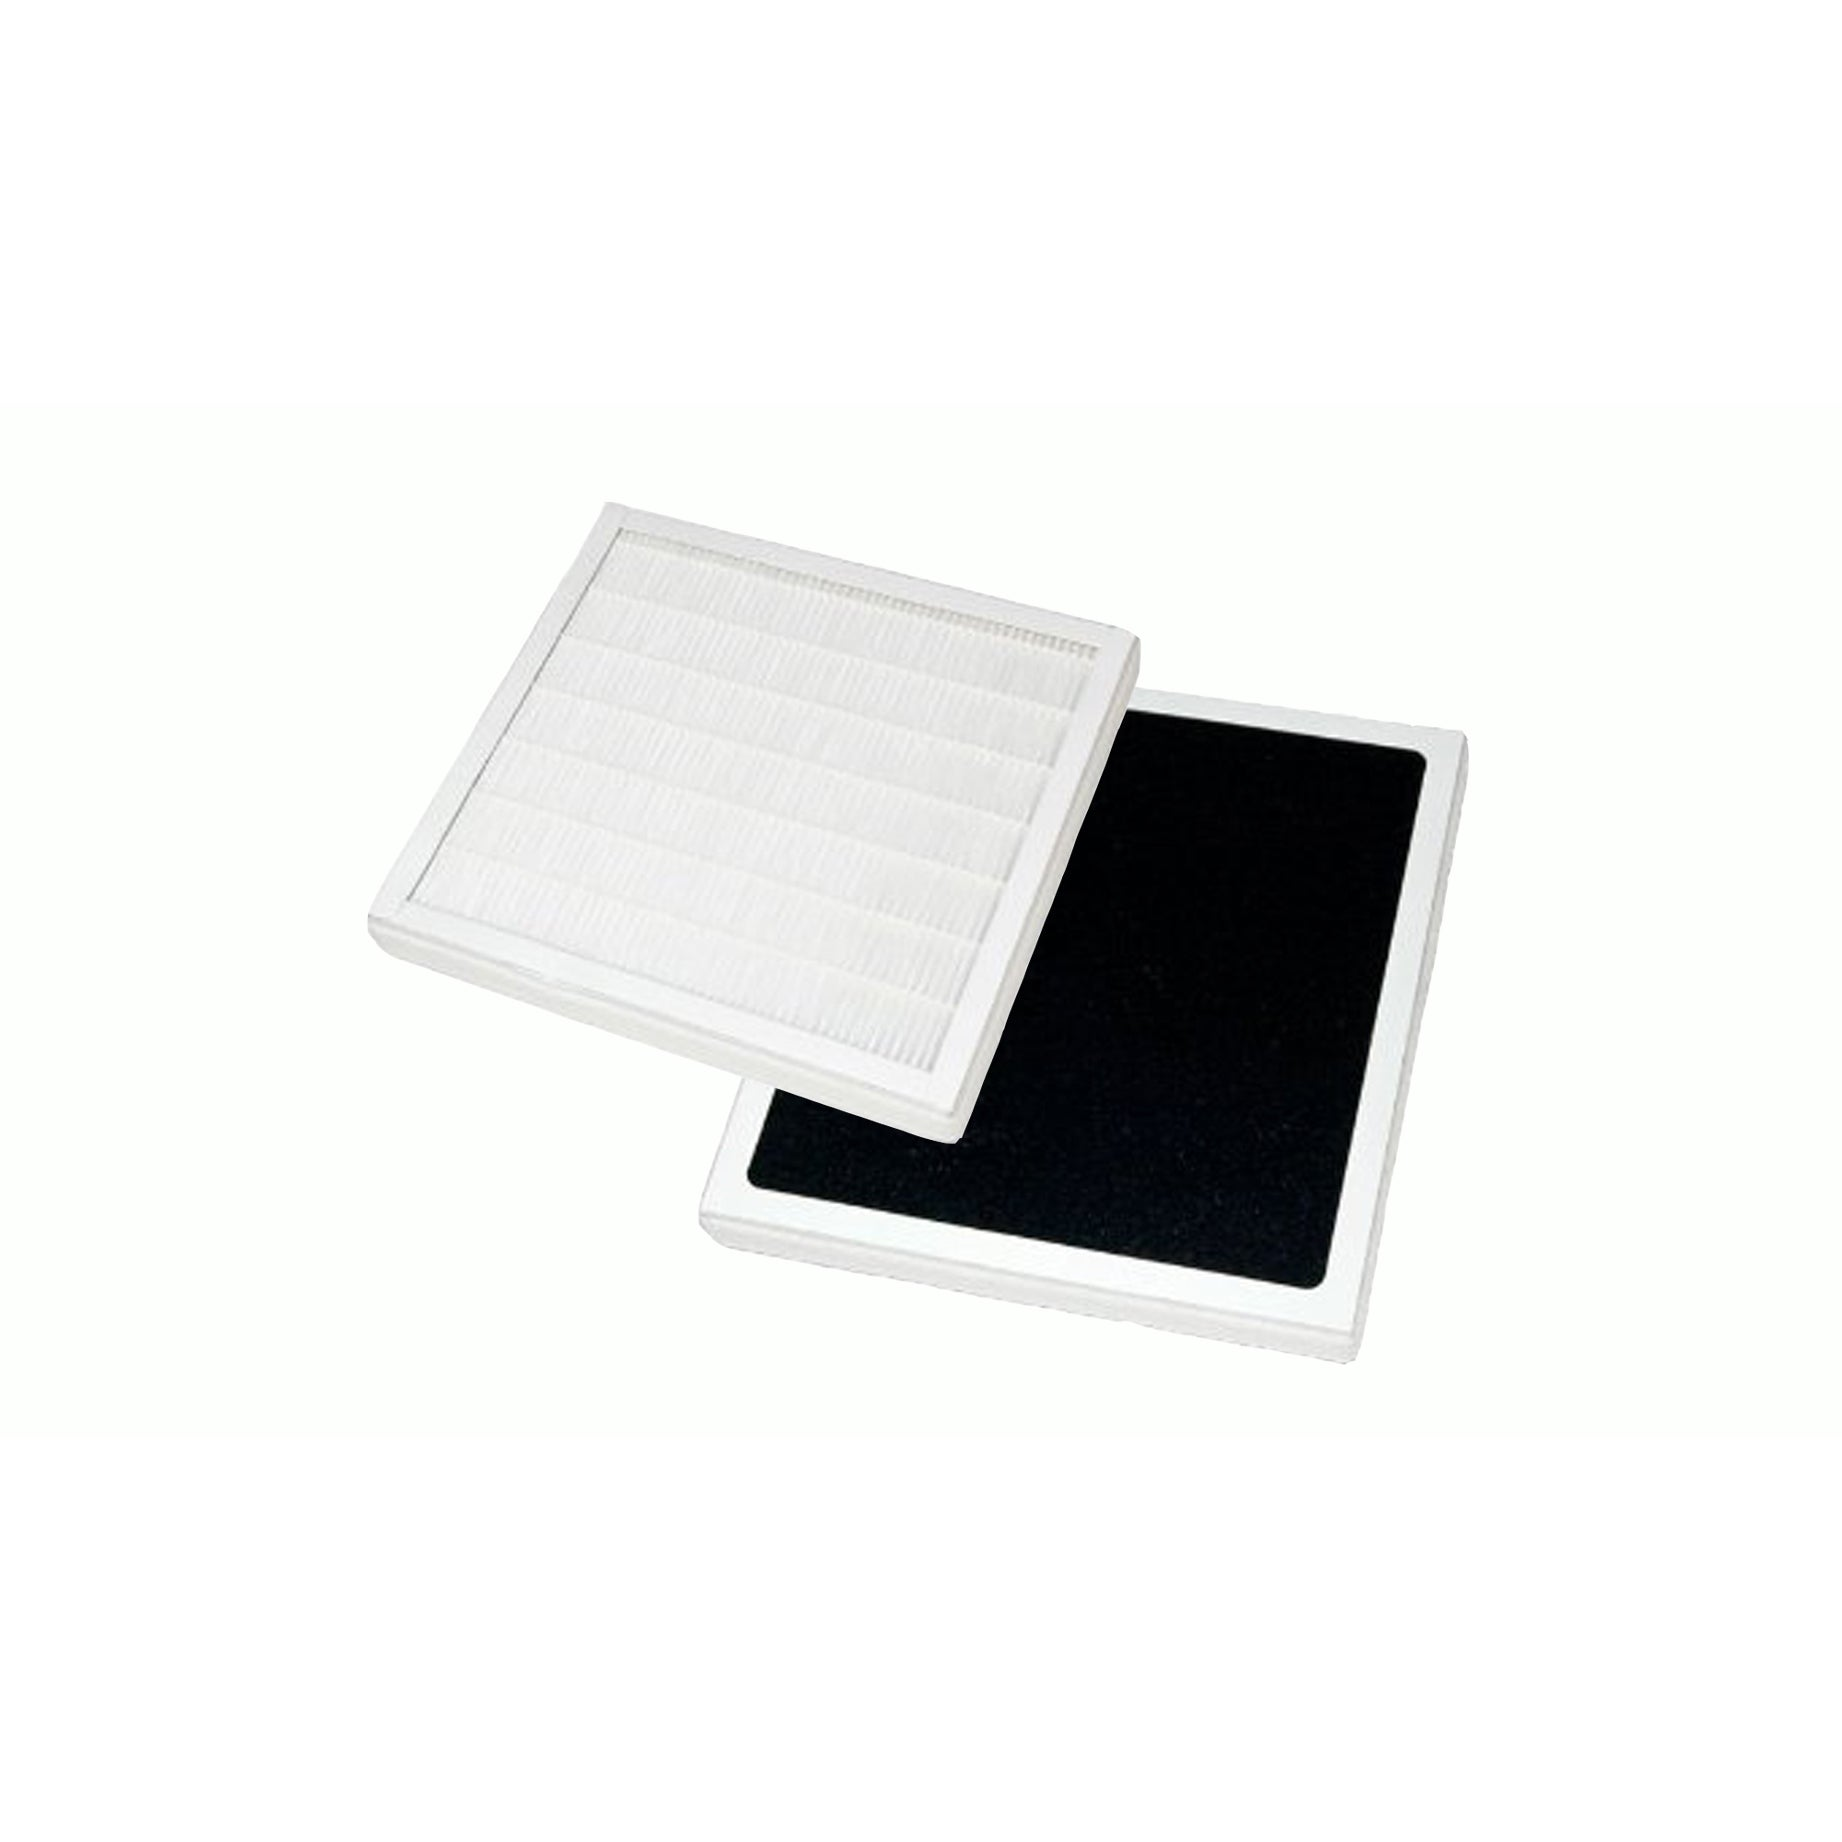 Crucial 2 Kenmore Air Purifier Filters Fit 83244 and 8524...